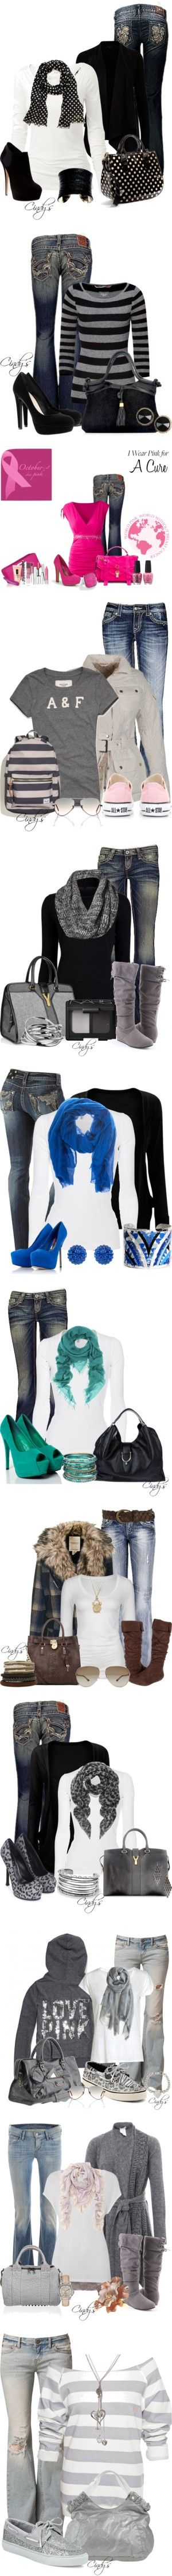 """outfits"" by sammiinalen ❤ liked on Polyvore"